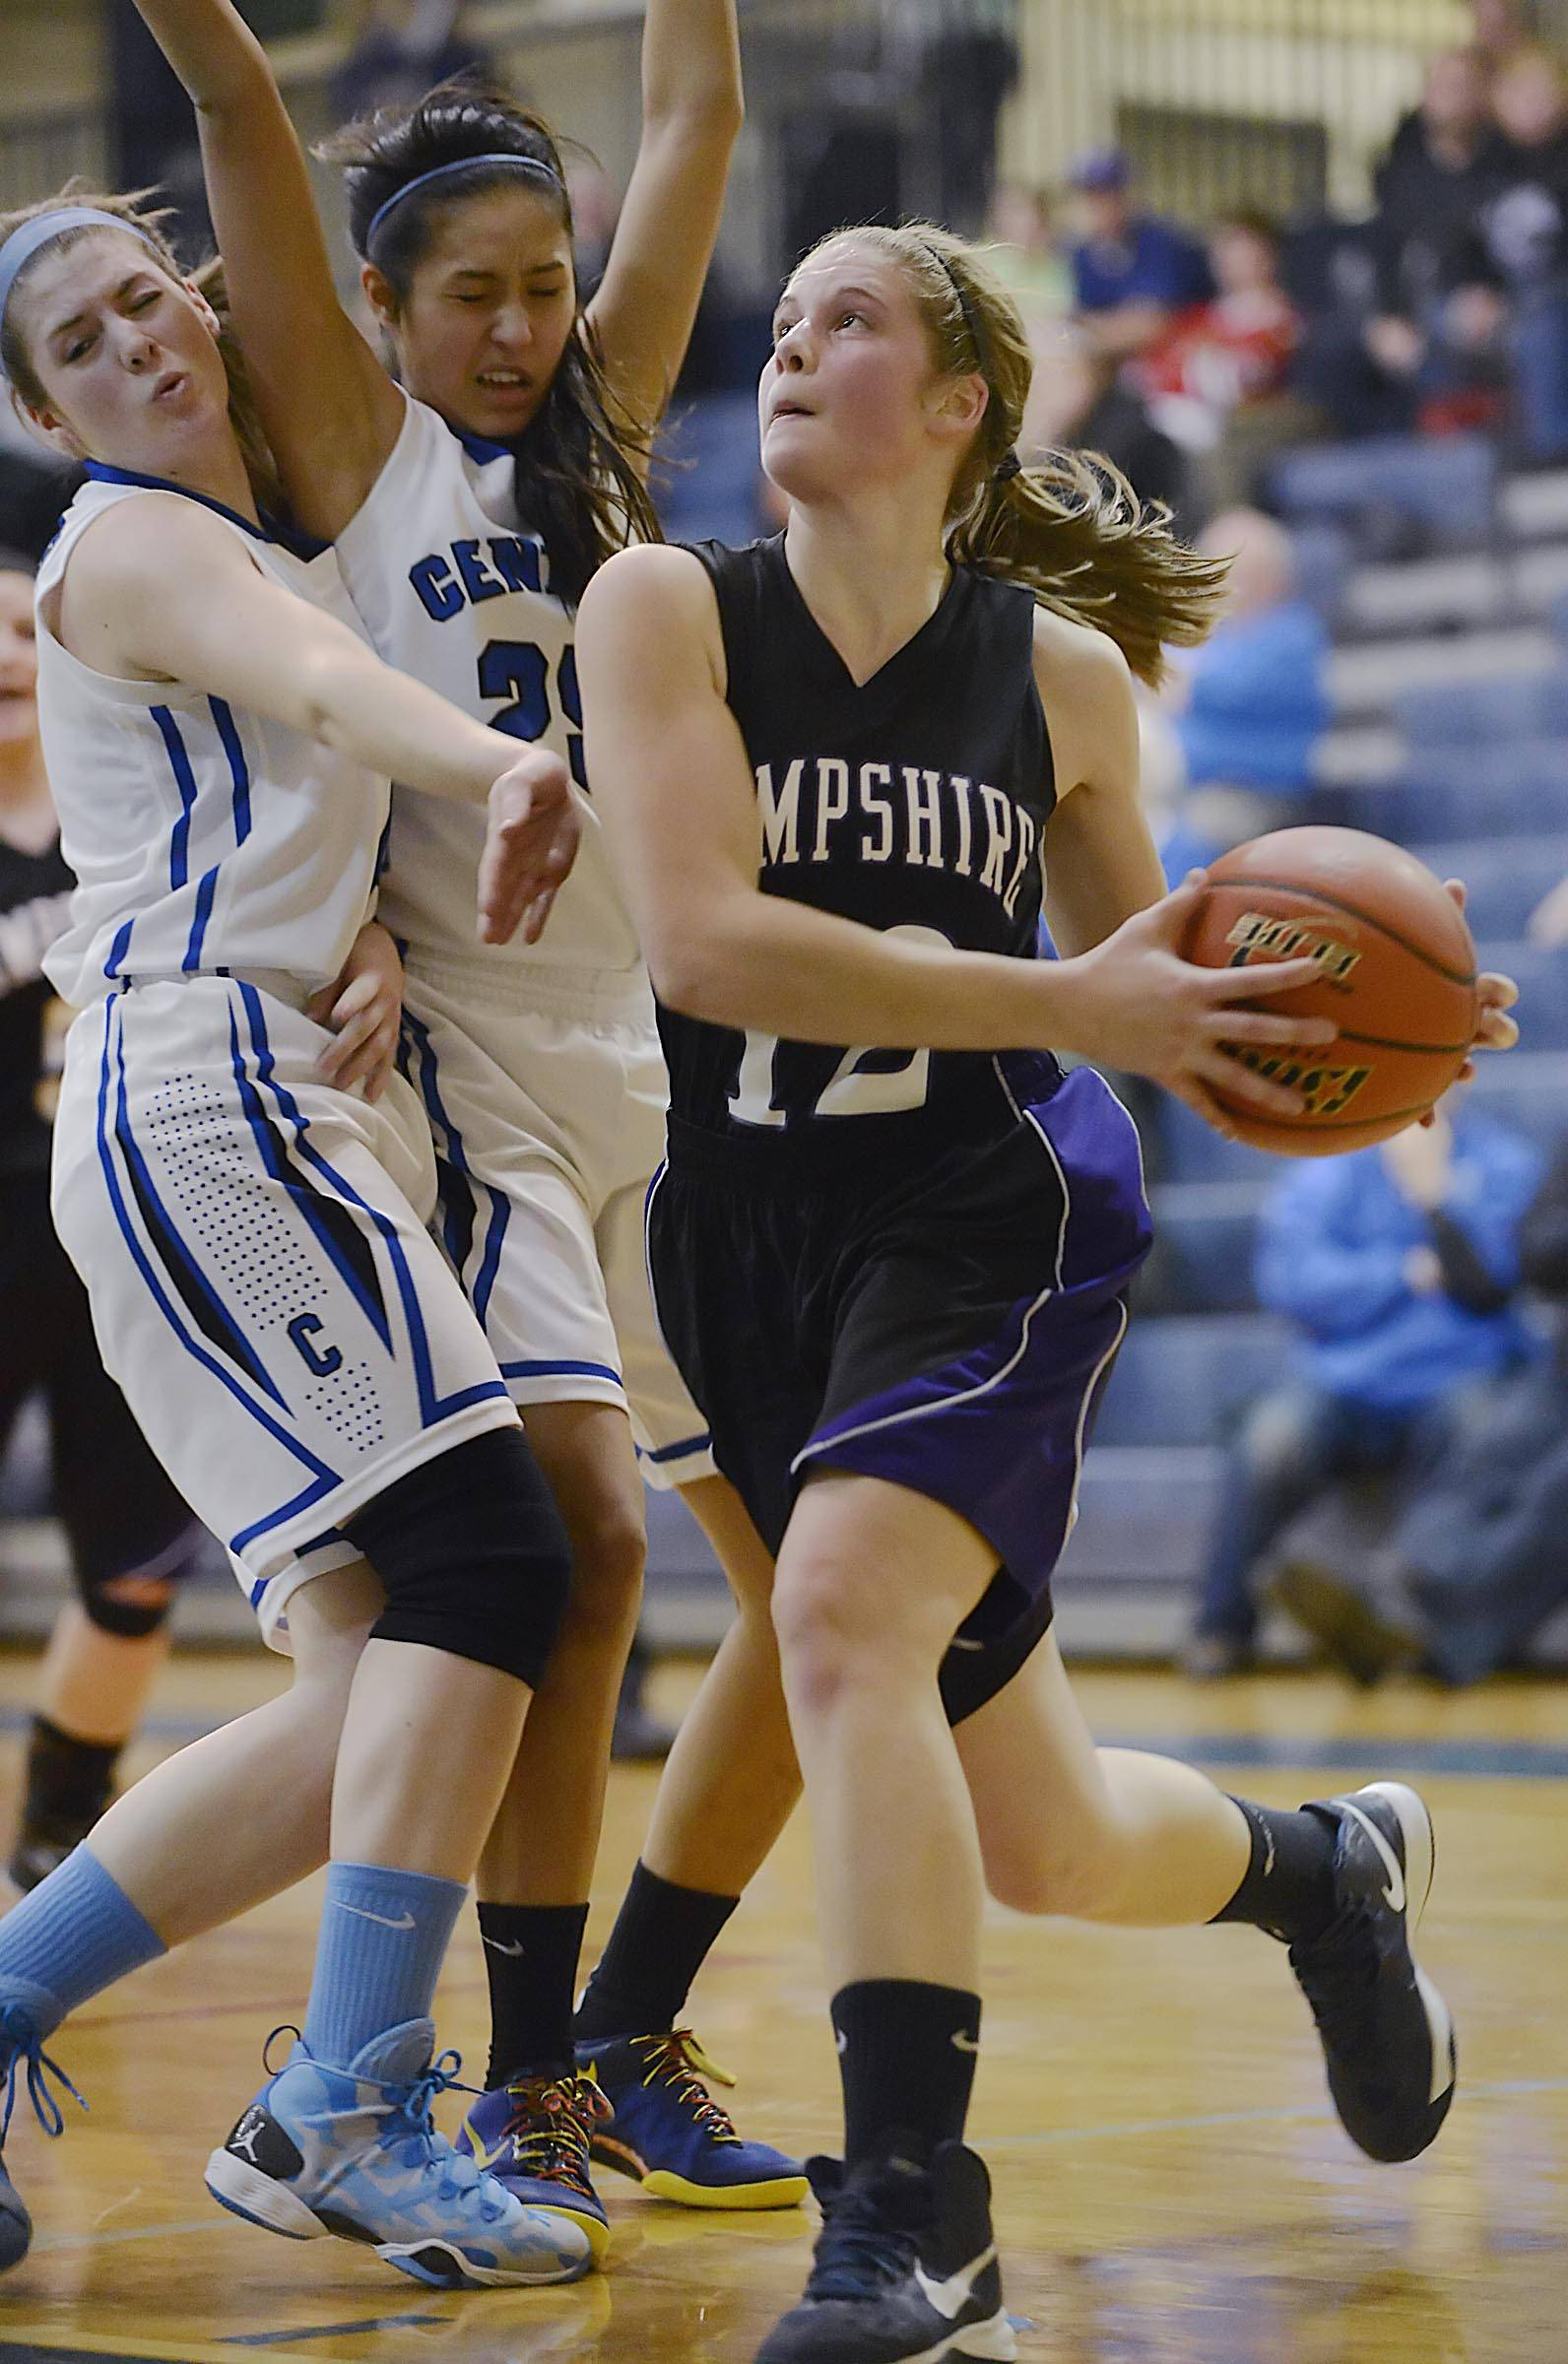 Burlington Central's Kayla Ross and Samantha Cruz collide as Hampshire's Nikki Dumoulin drives to the hoop.